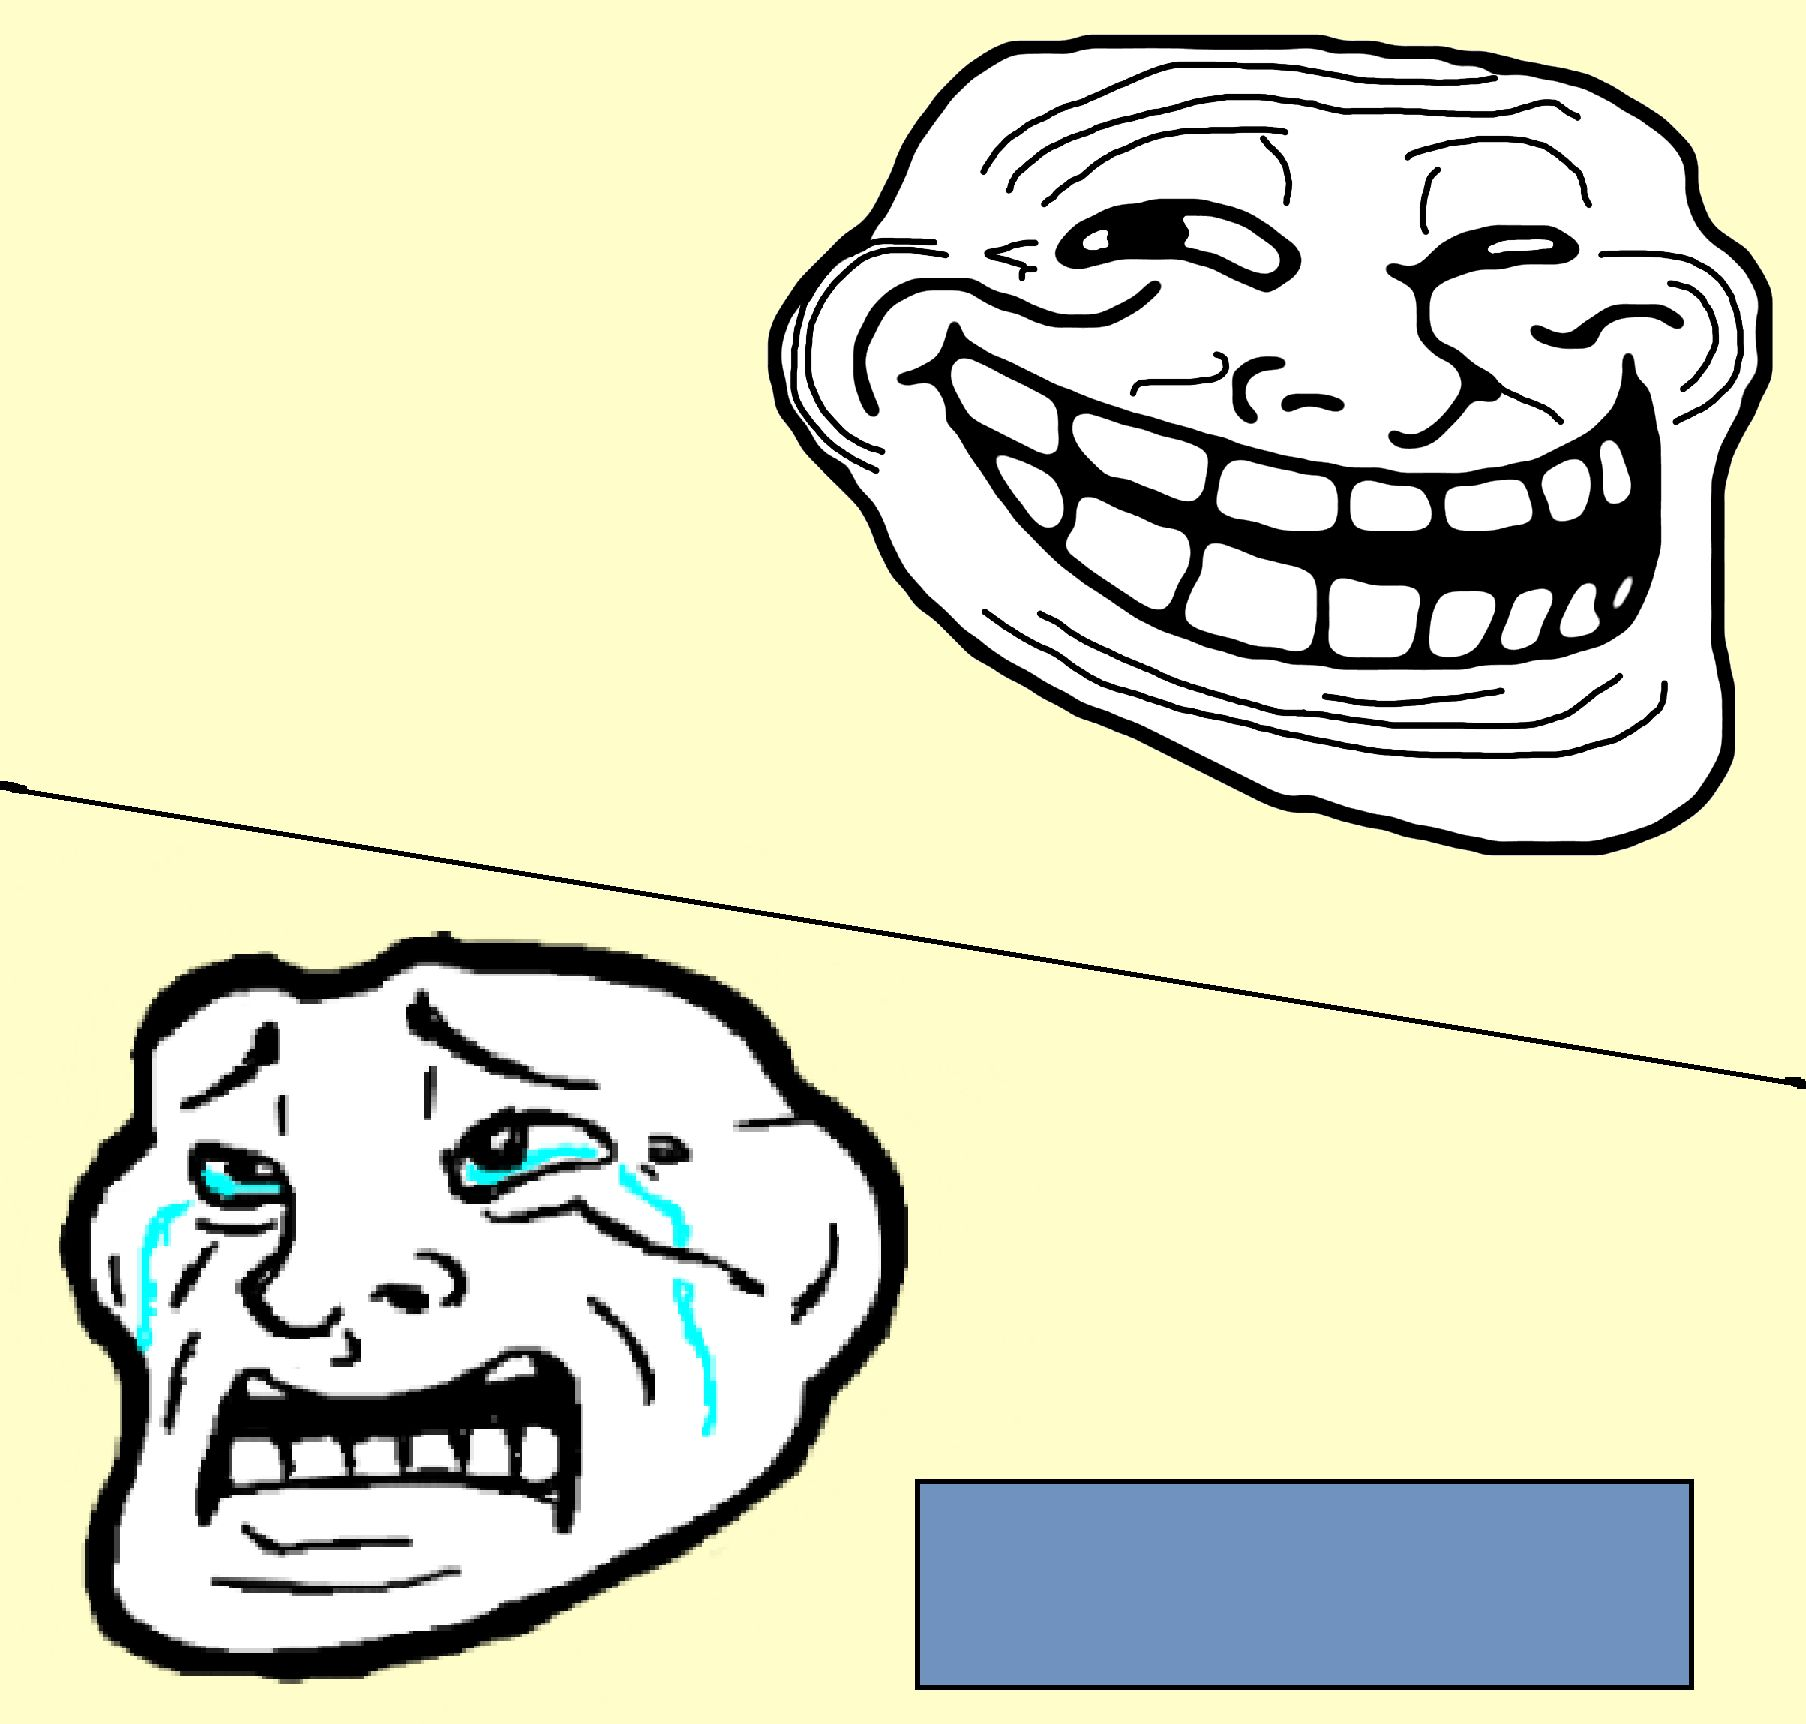 Crying Troll Face Blank Template - Imgflip